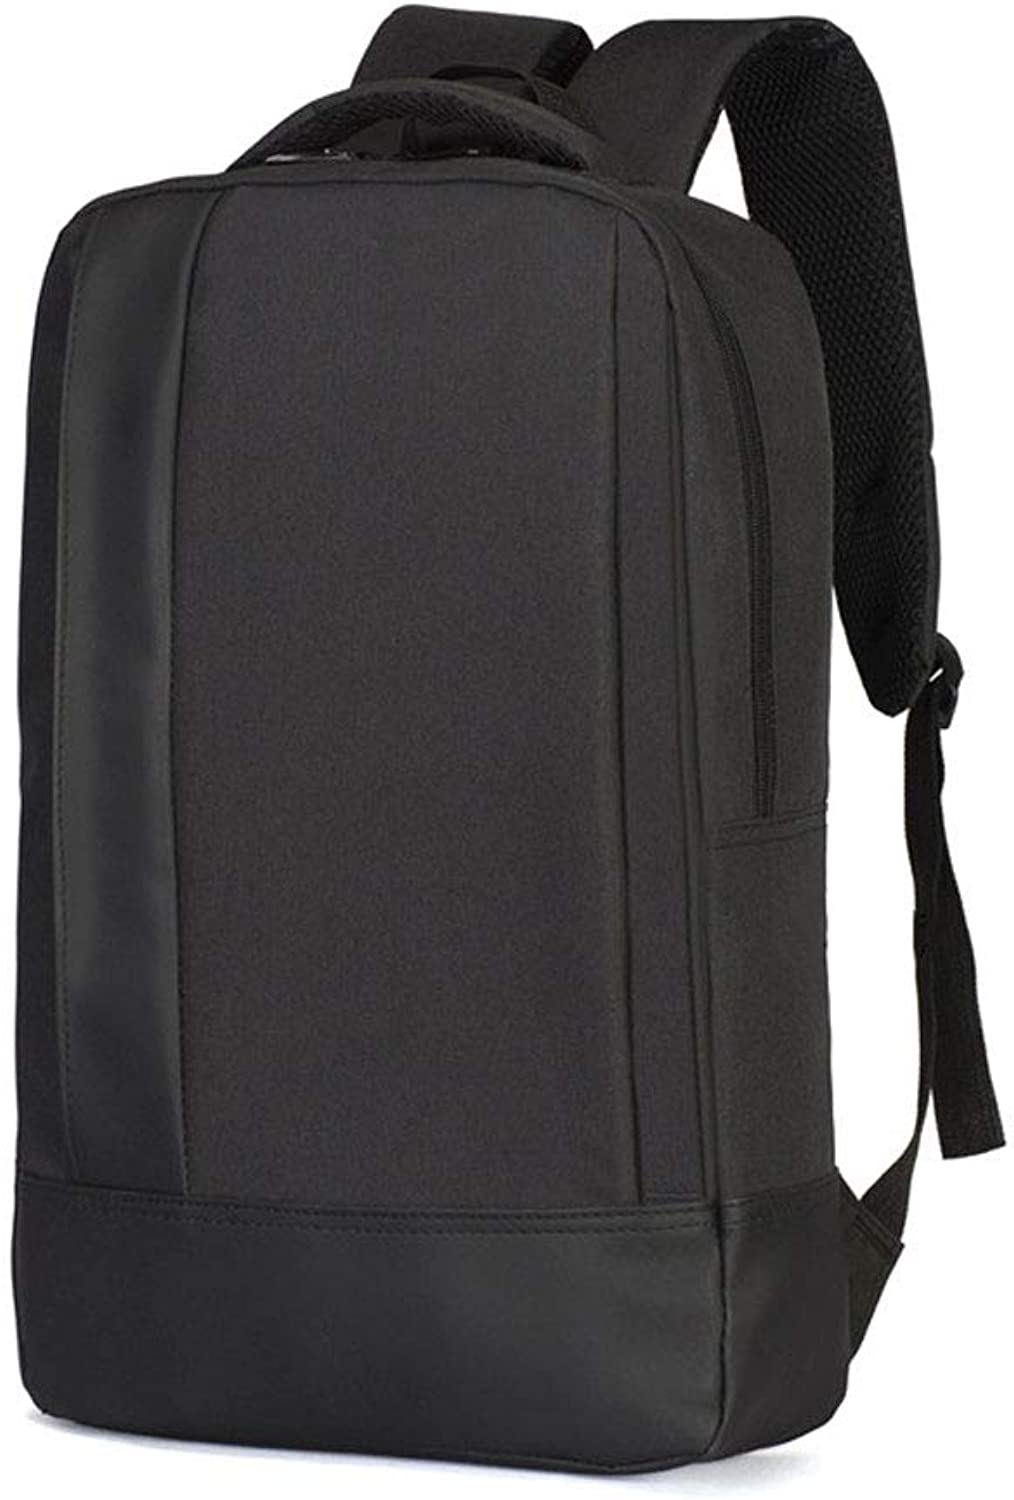 Laptop Bag Waterproof Backpack, Outdoor Travel Climbing Large Capacity Knapsack, Men's and Women's College Student Backpack, Business Casual Backpack (color   Black)